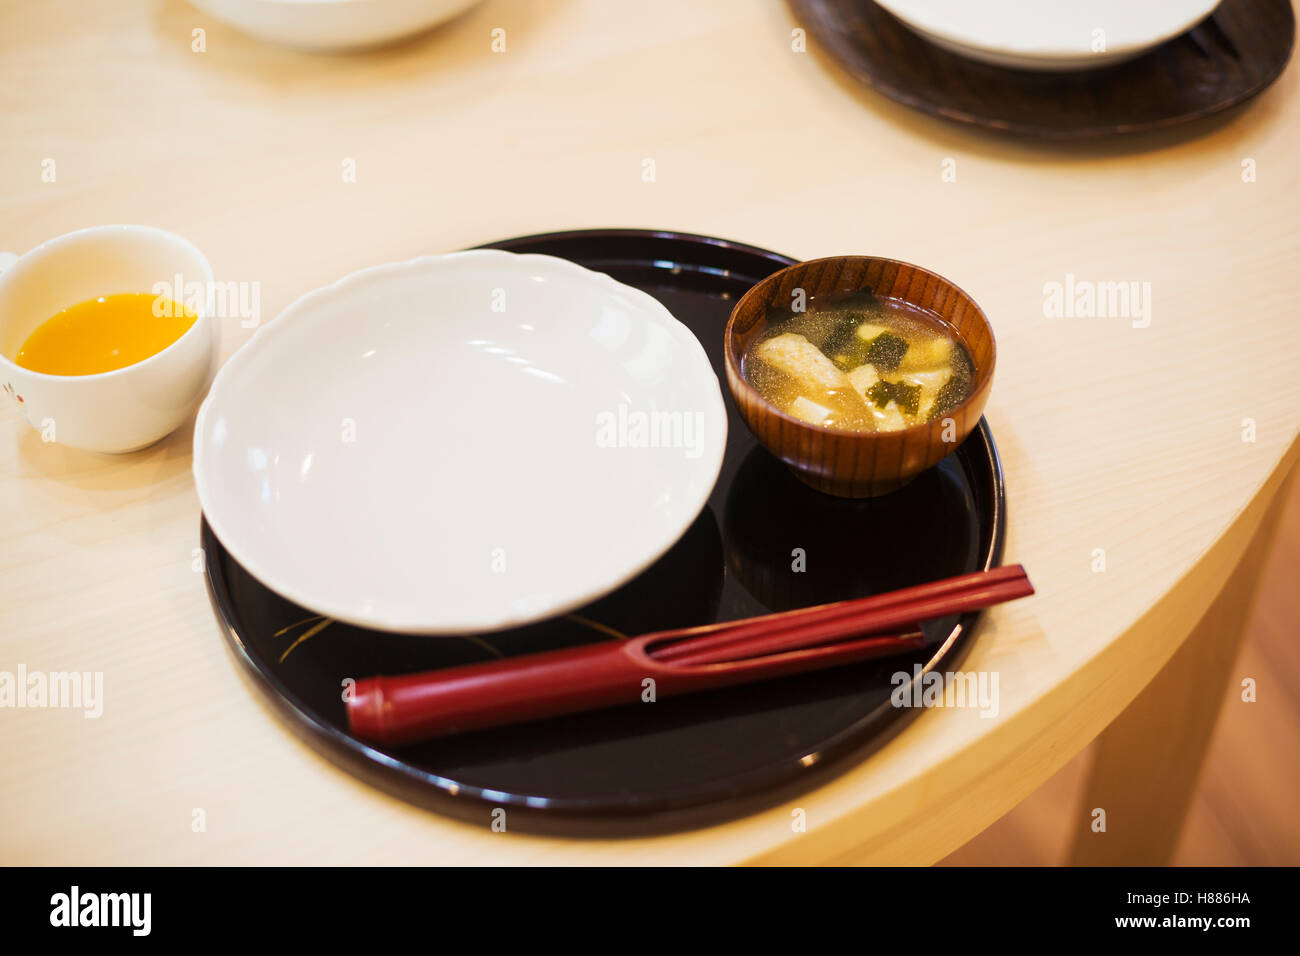 Family home. A table place set for a meal. Mat, bowl and chopsticks. - Stock Image